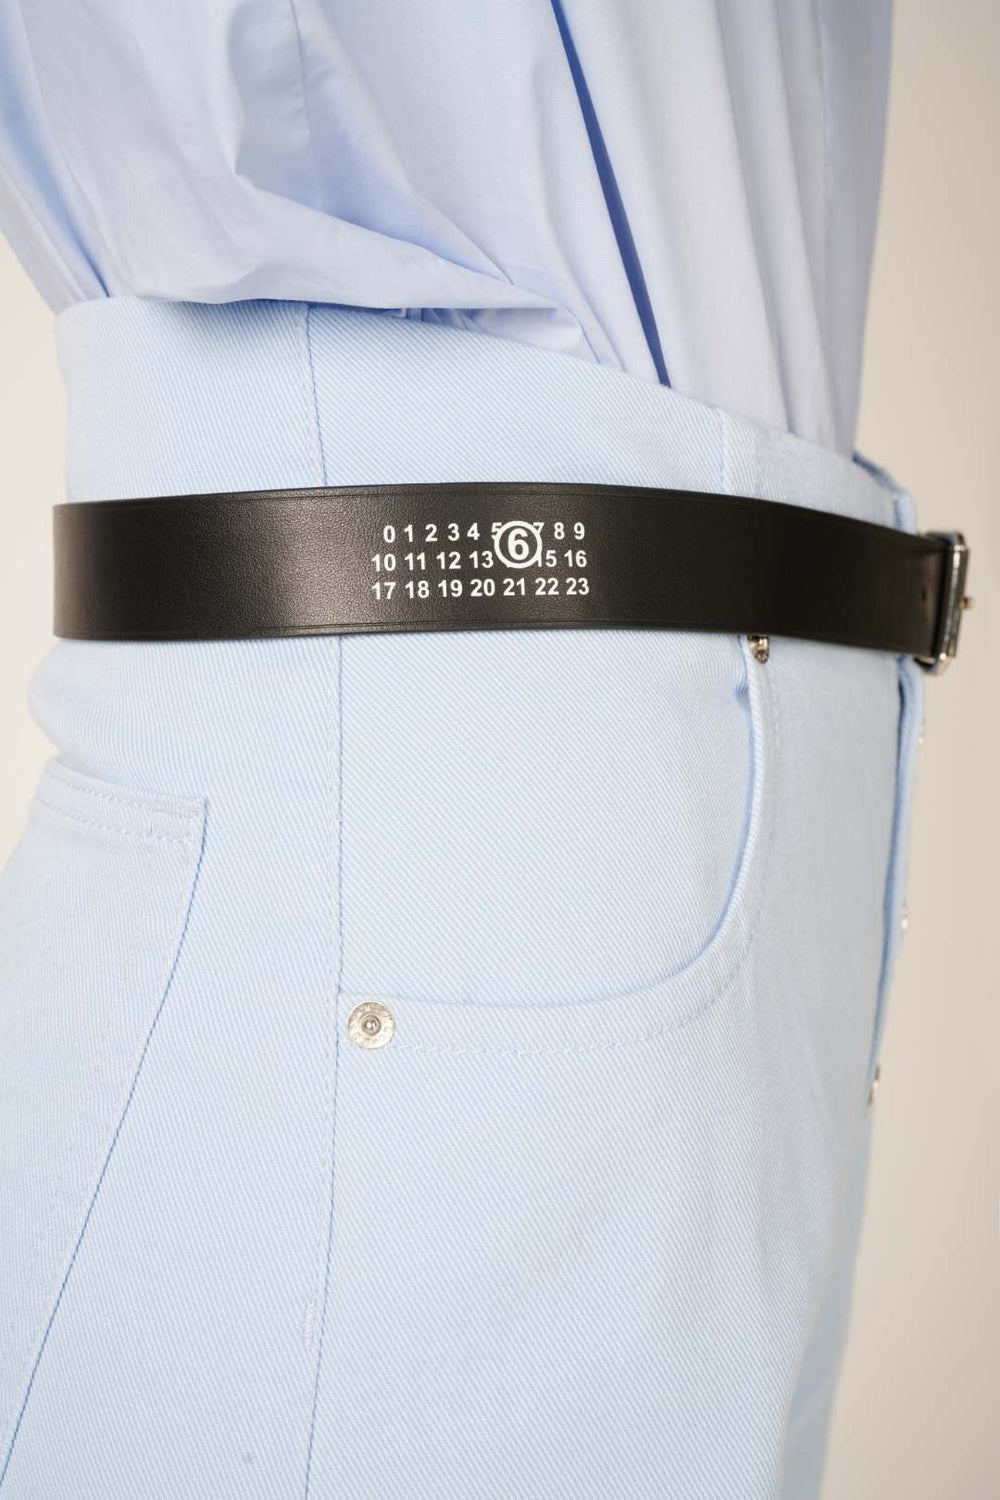 Logo print belt-Black - Studio Avra